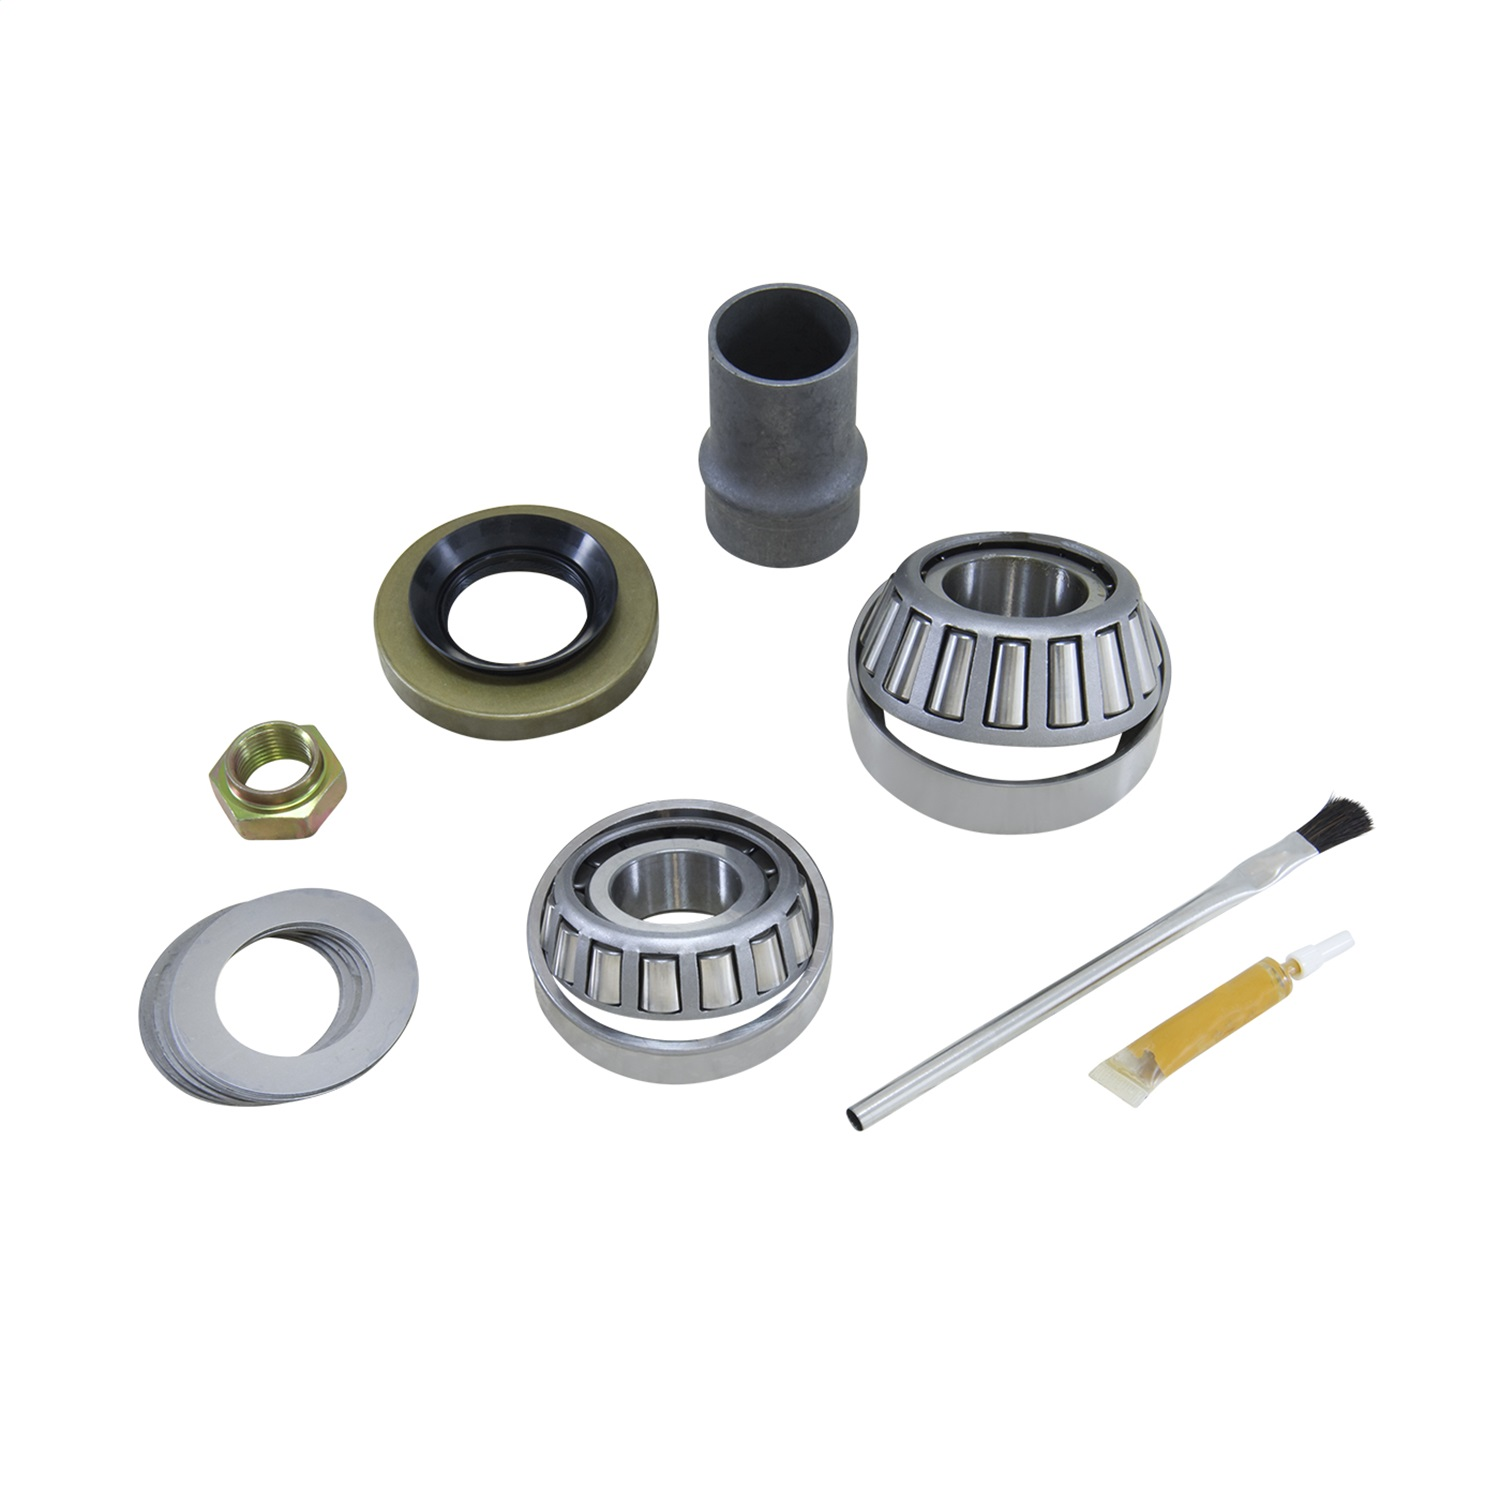 Yukon Gear & Axle PK TLC-REV-B Pinion Install Kit Fits 4Runner FJ Cruiser Tacoma